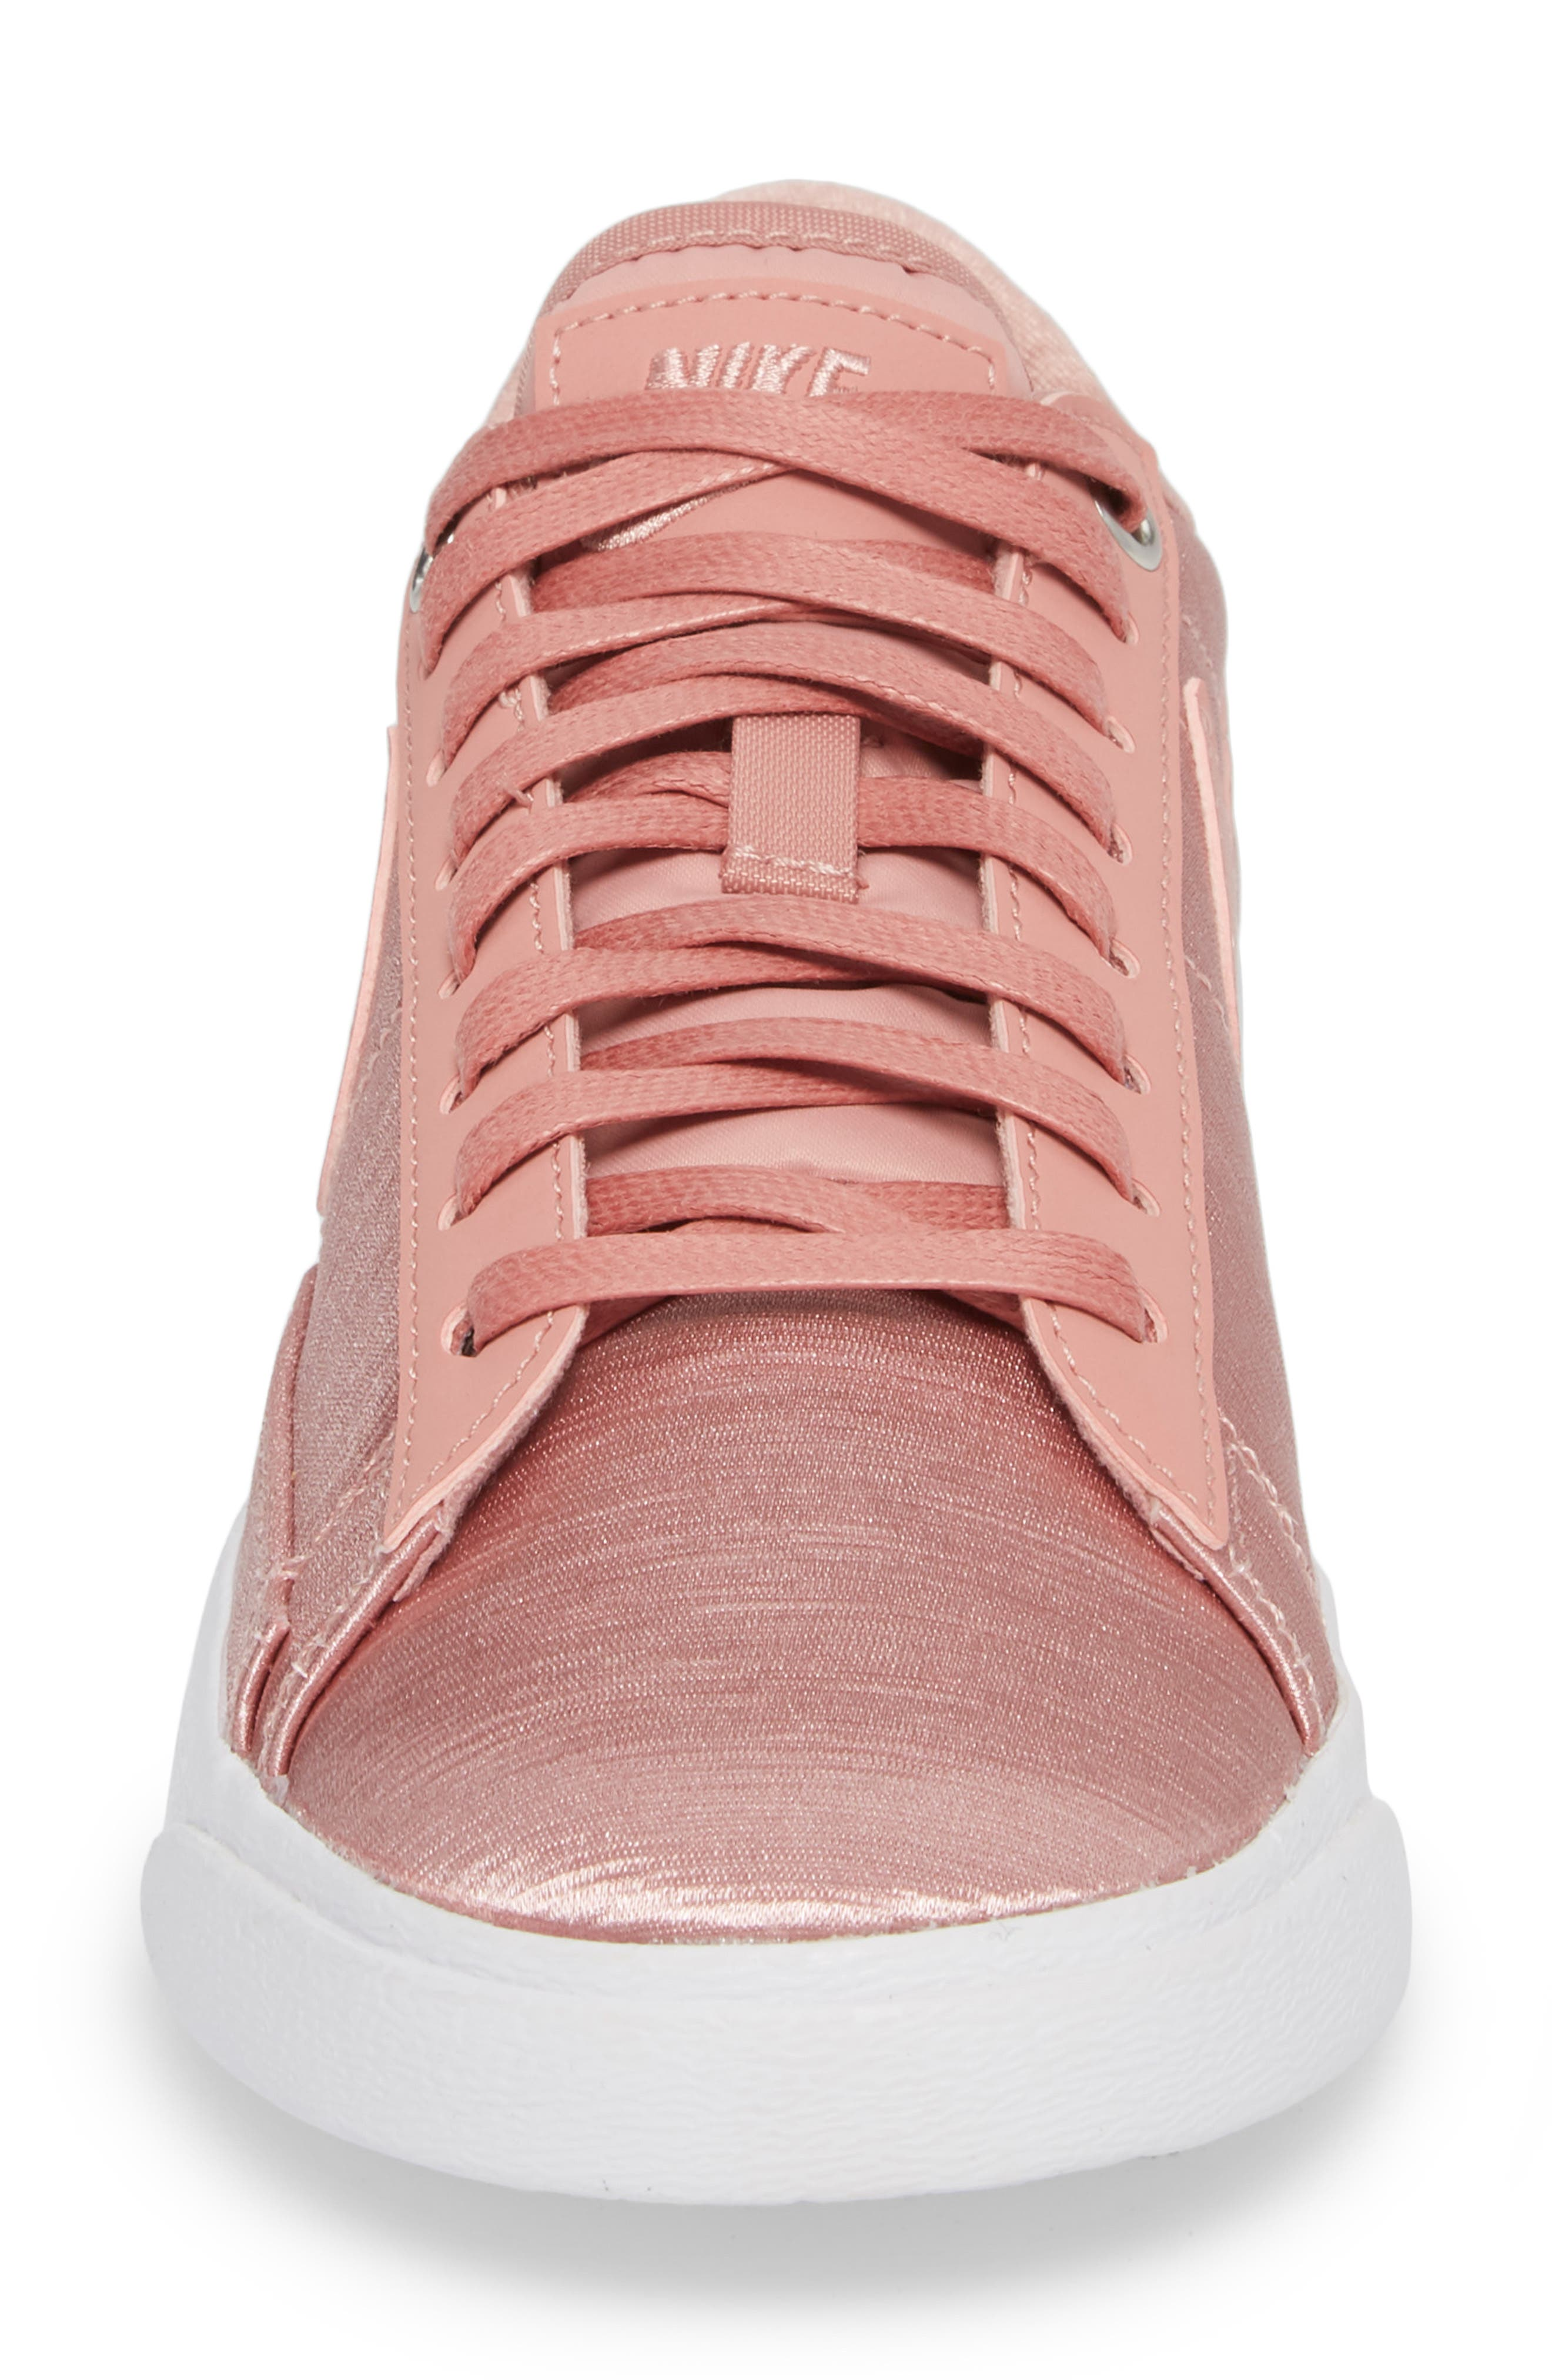 Blazer Low SE Sneaker,                             Alternate thumbnail 4, color,                             Rust Pink/ Rust Pink